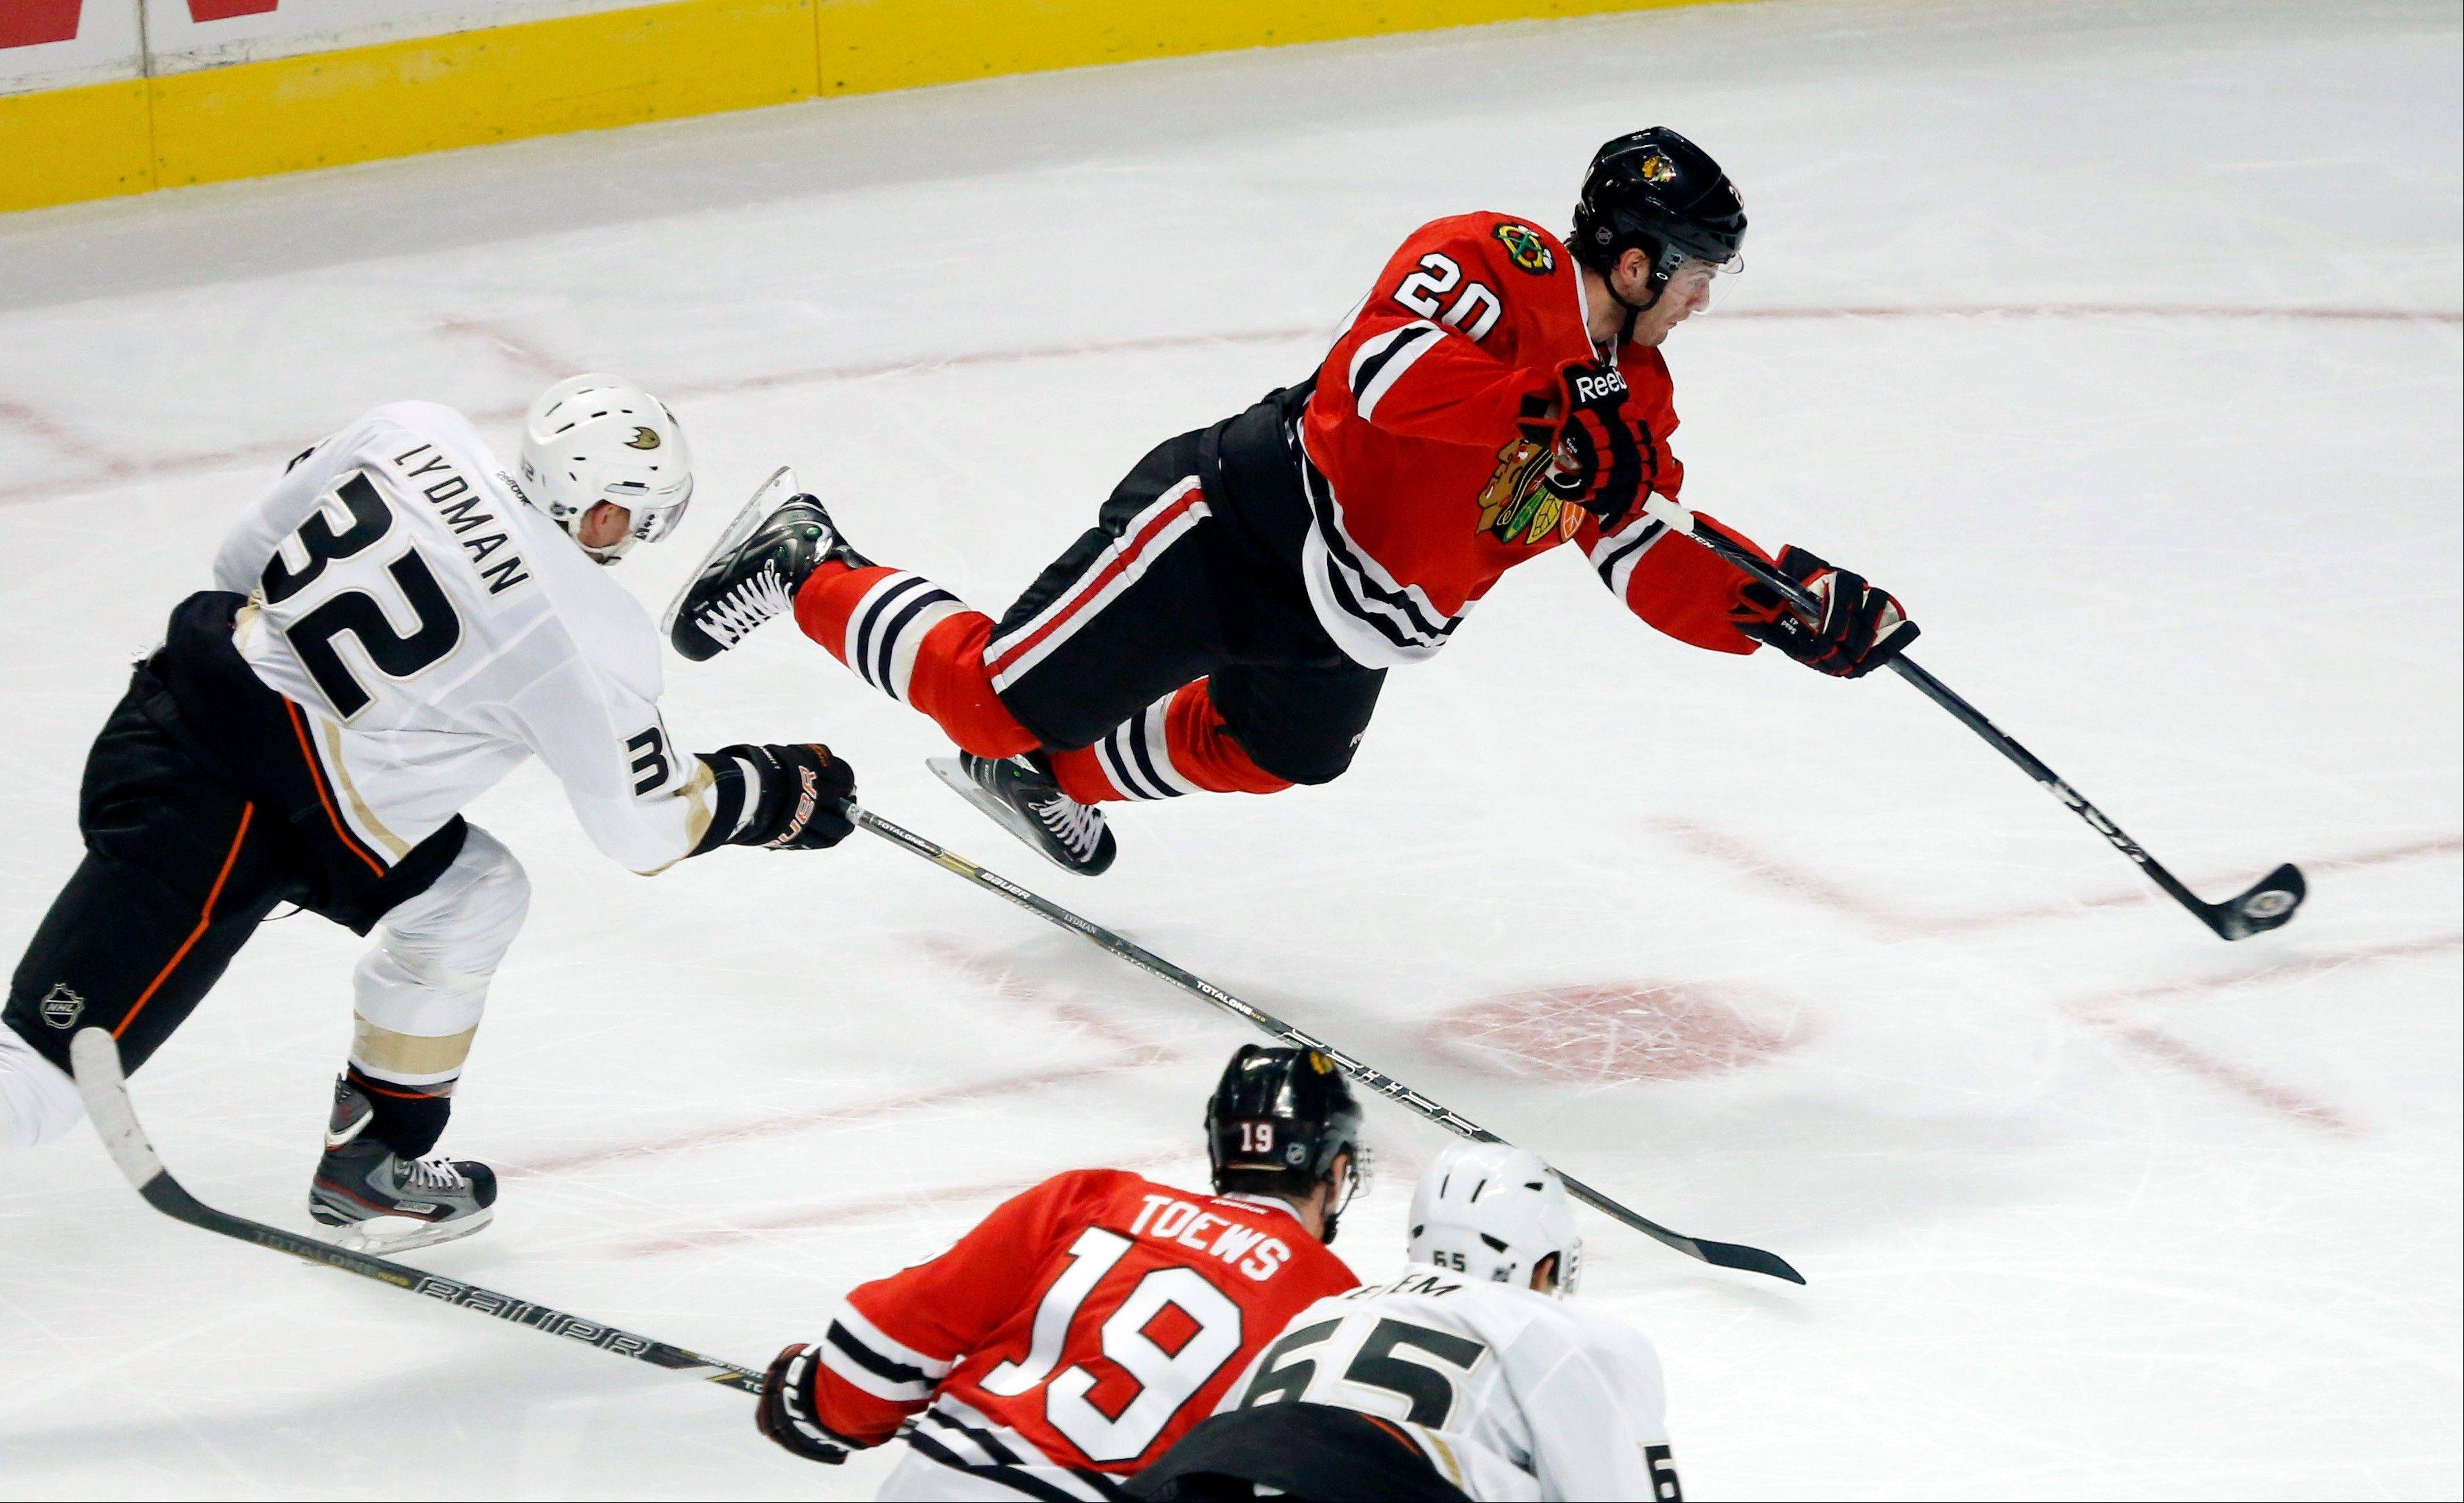 The Blackhawks' Brandon Saad goes airborne and shoots past Ducks defenseman Toni Lydman as the Hawks' Jonathan Toews and the Ducks' Emerson Etem watch during the second period Tuesday night. After a review, Saad was credited with the goal to give the Hawks a 2-1 lead.